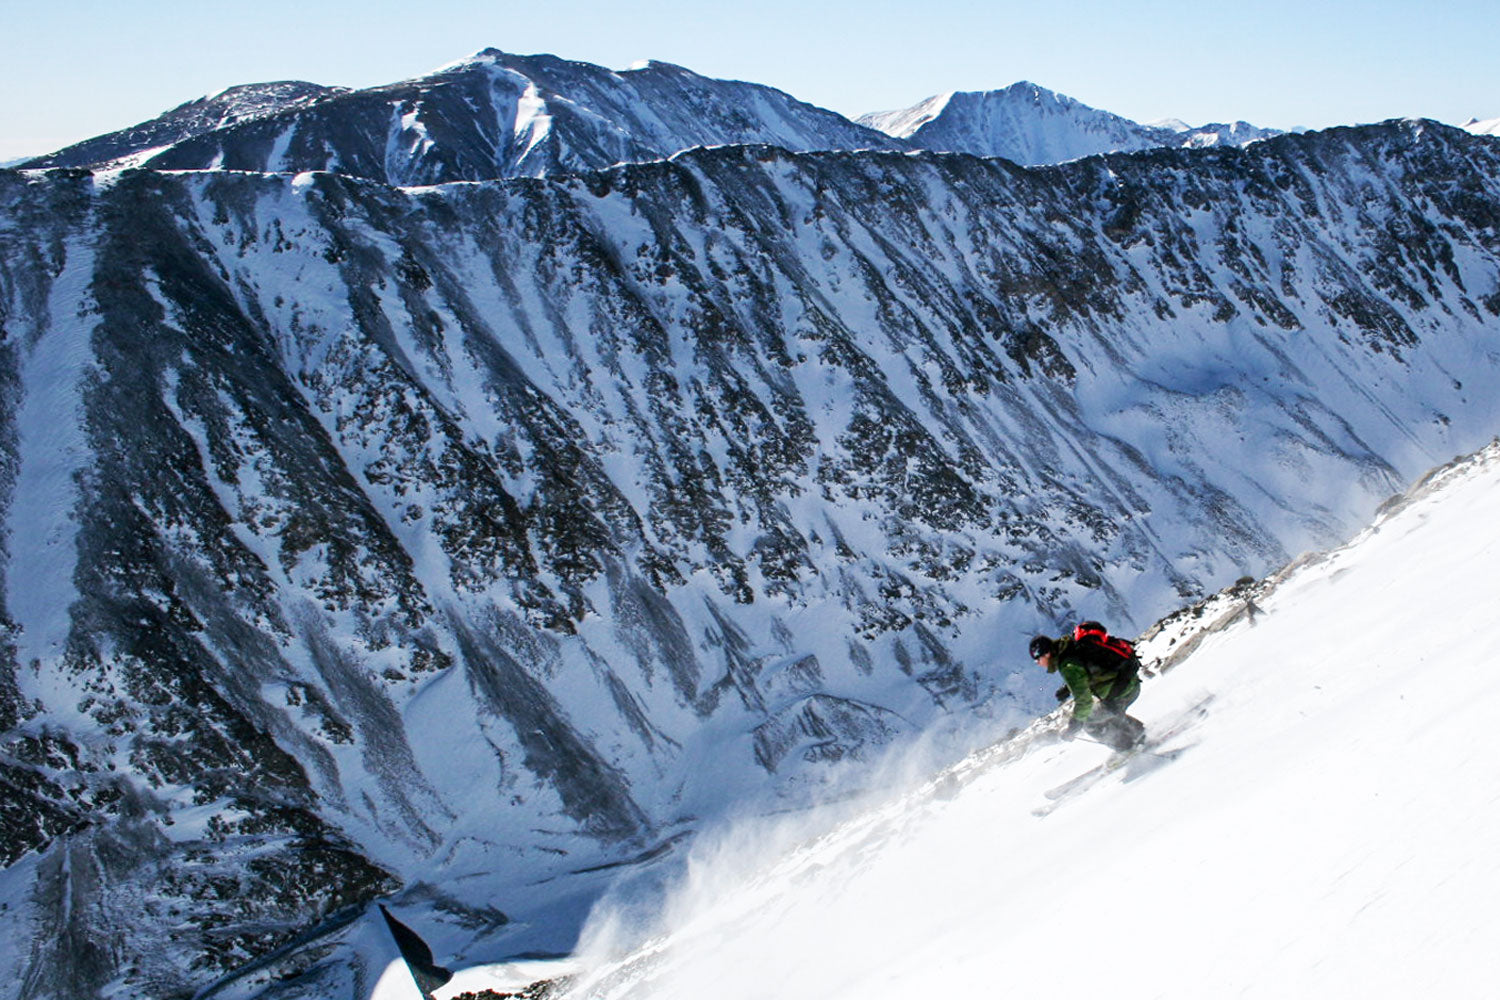 Backcountry skier on Quandry